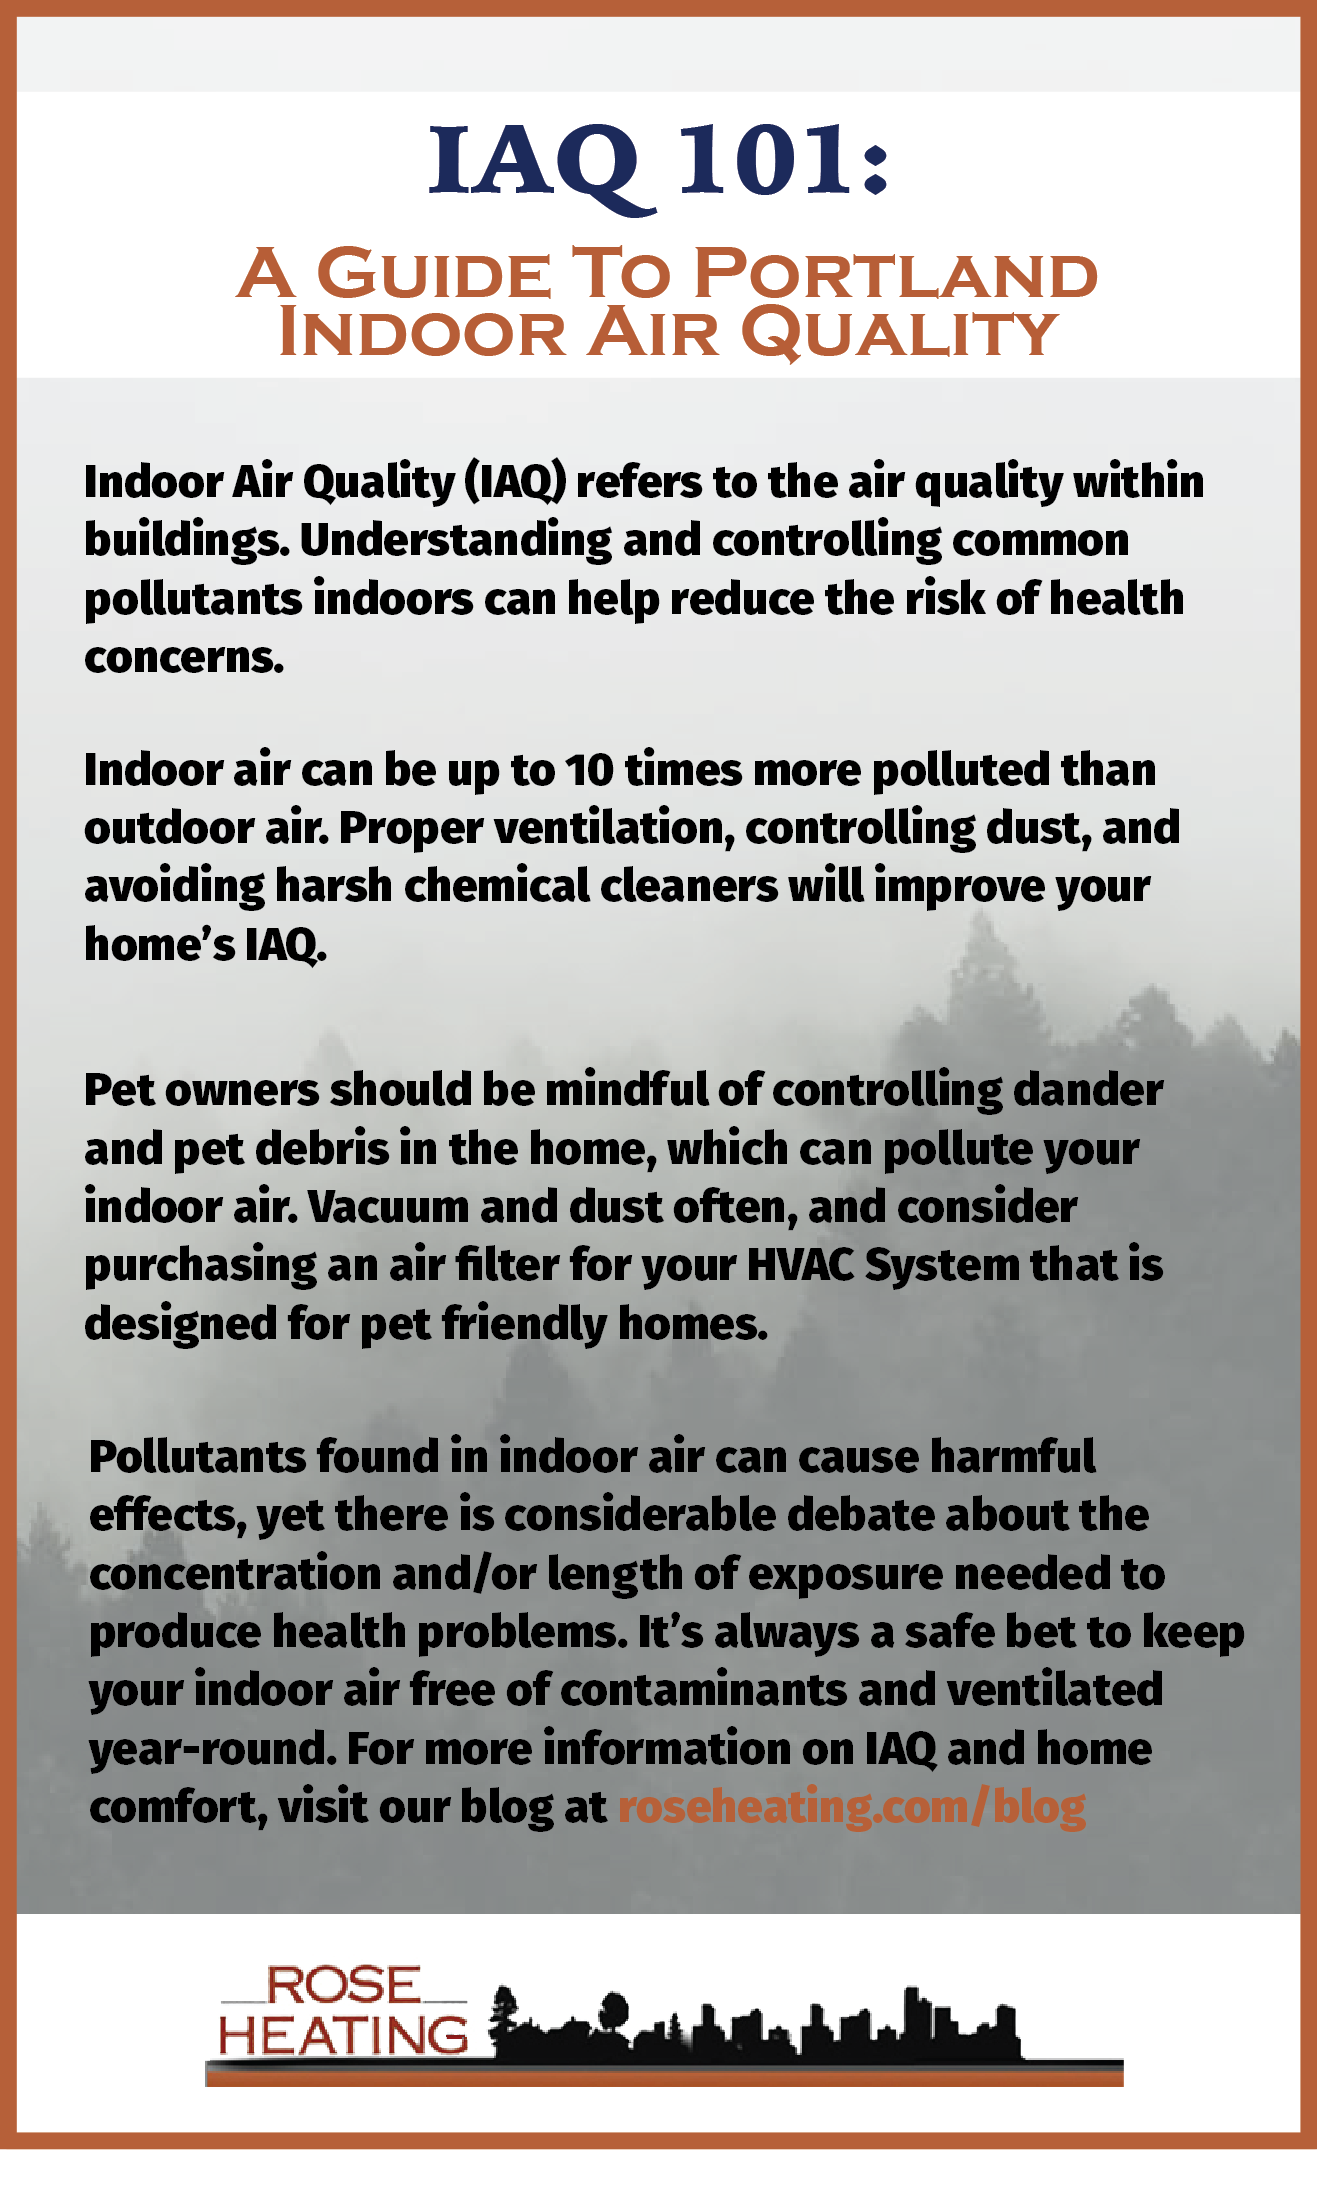 iaq 101 a guide to portland indoor air quality